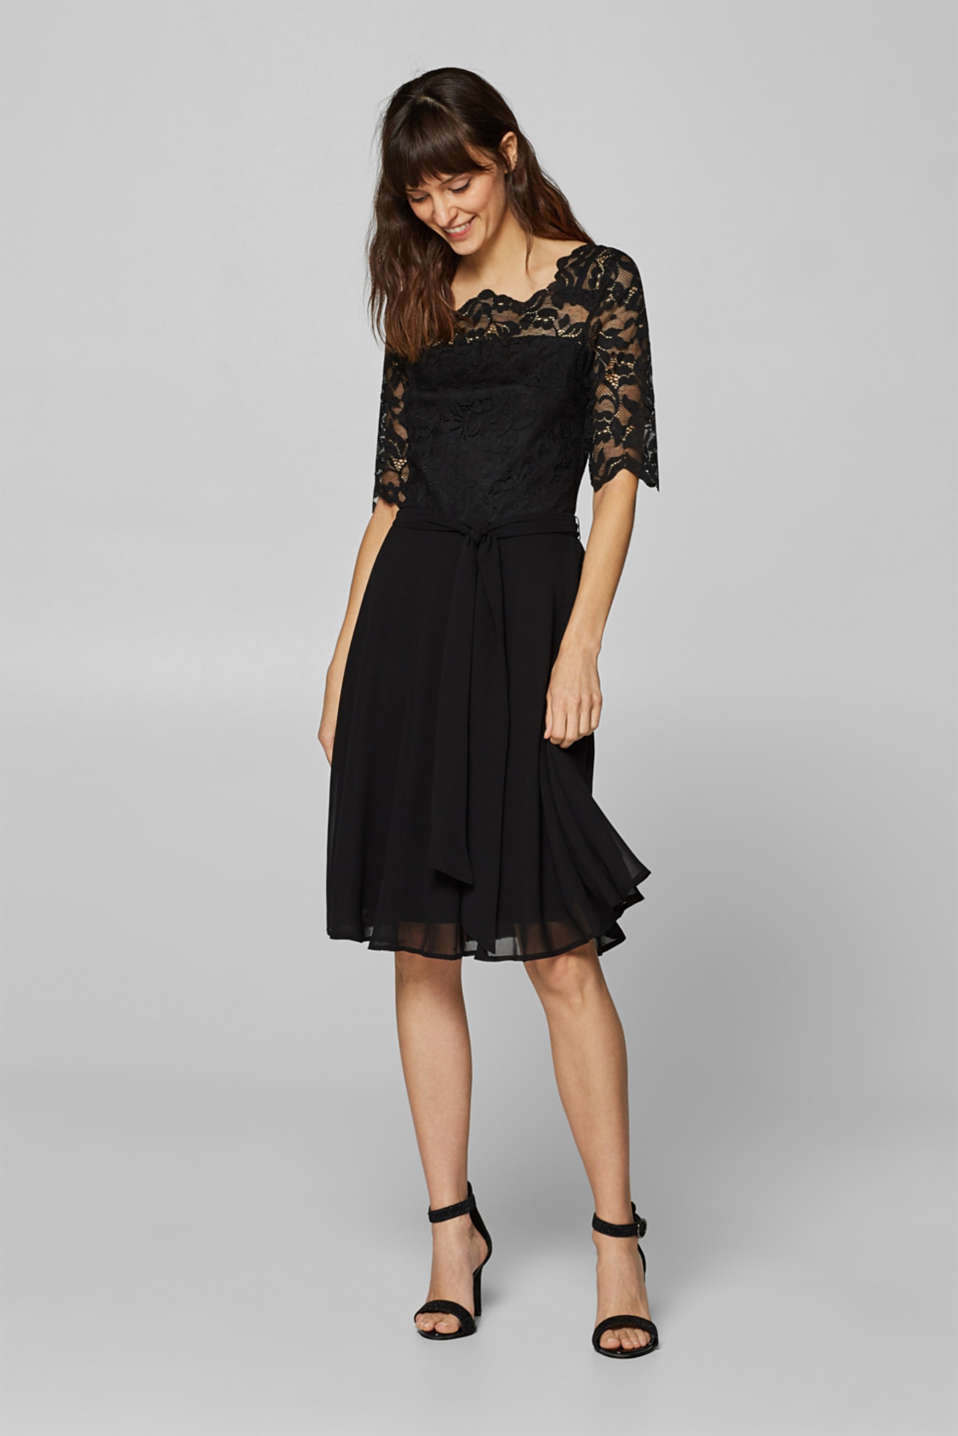 Esprit - Dress in stretchy lace and chiffon